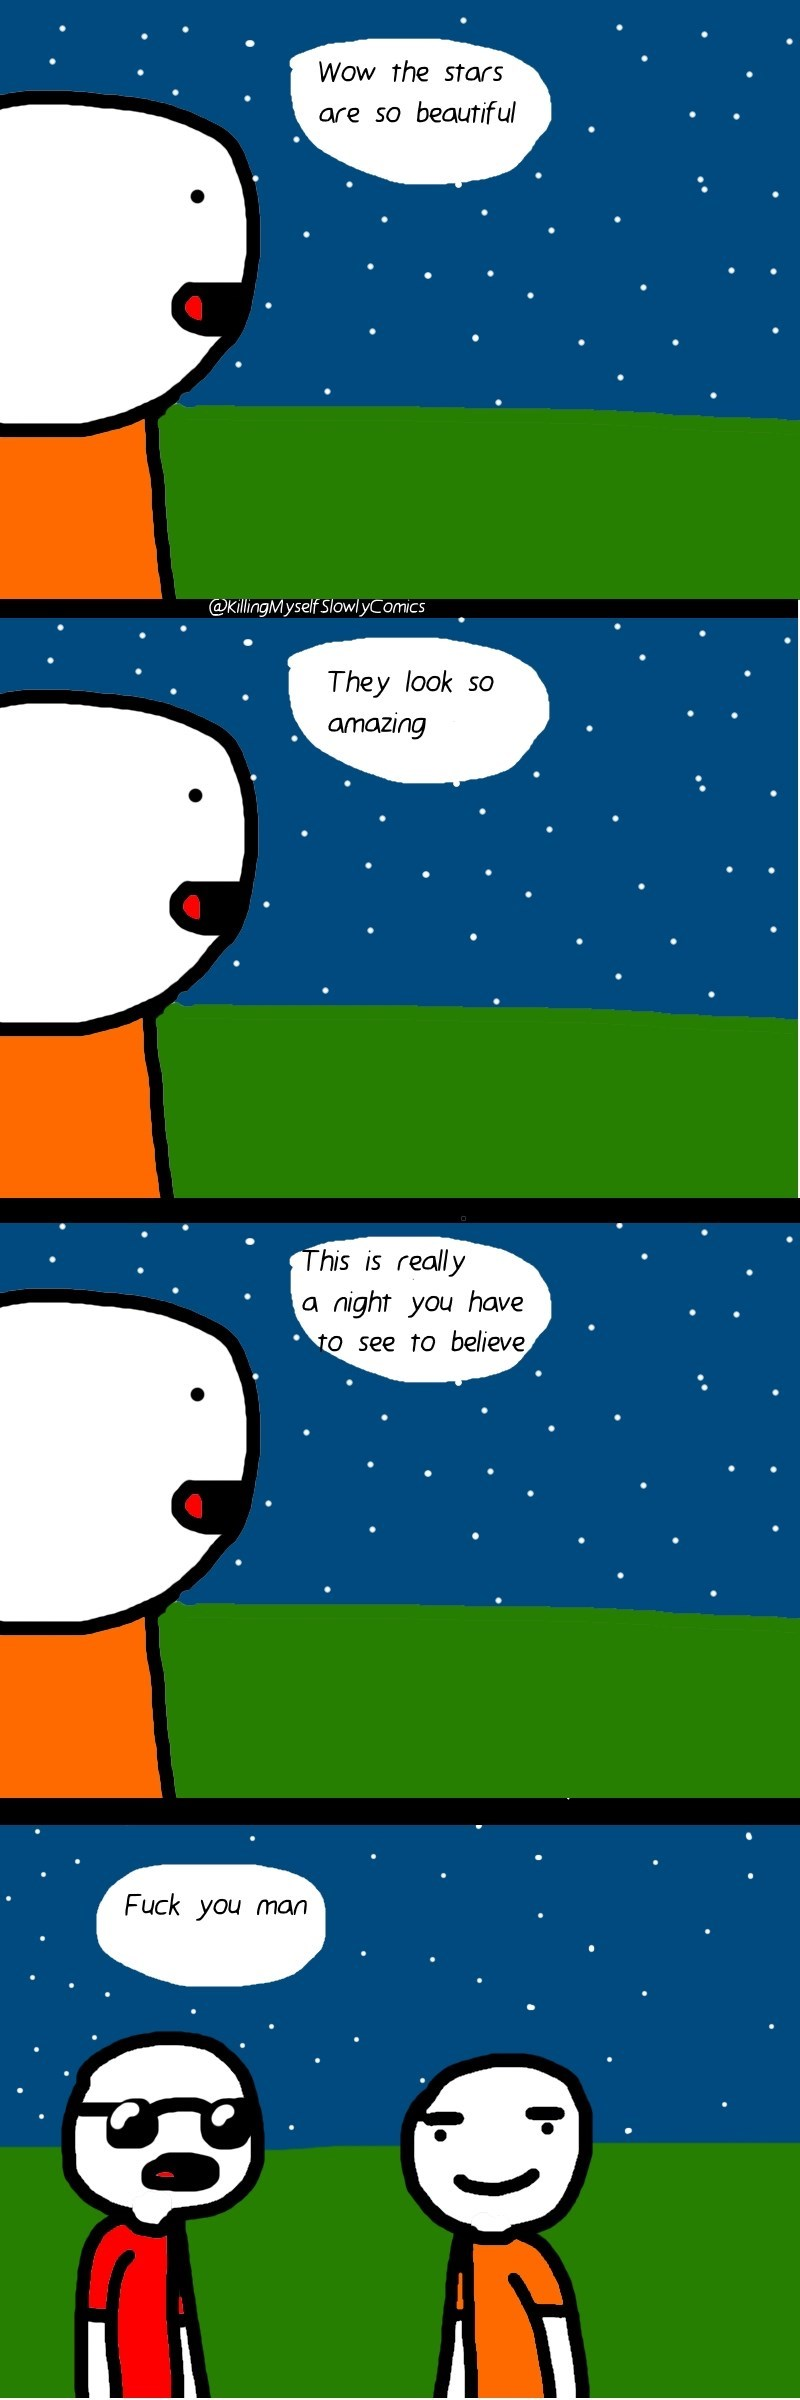 trolling,blind,night sky,stars,space,web comics